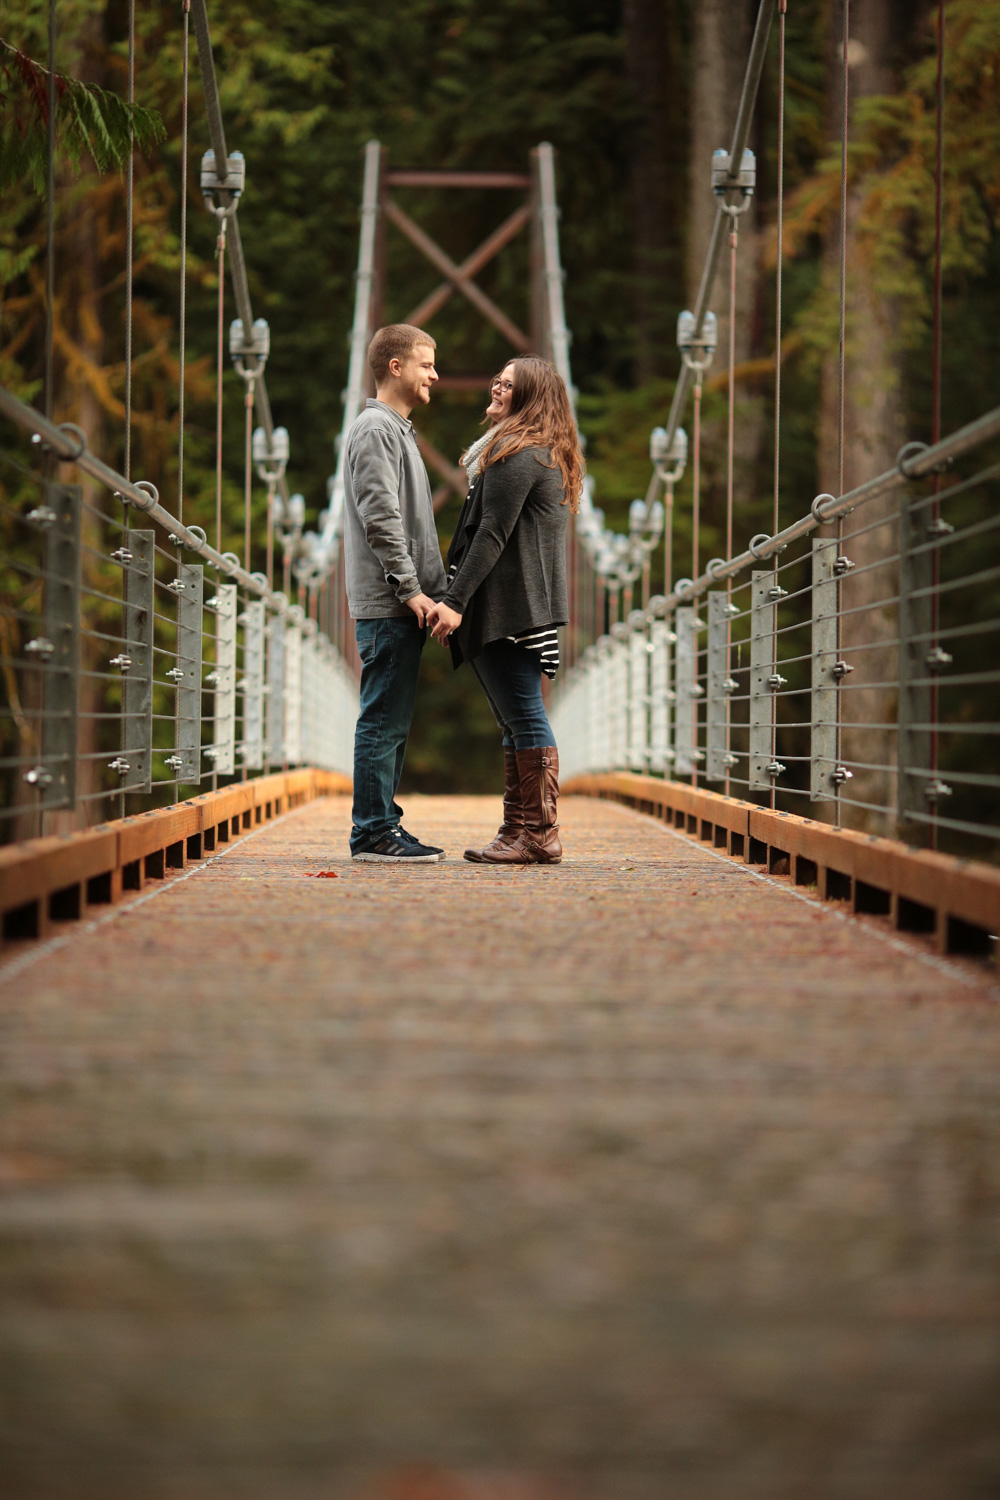 Engagement+Photos+Olympic+Peninsula+Washington06.jpg